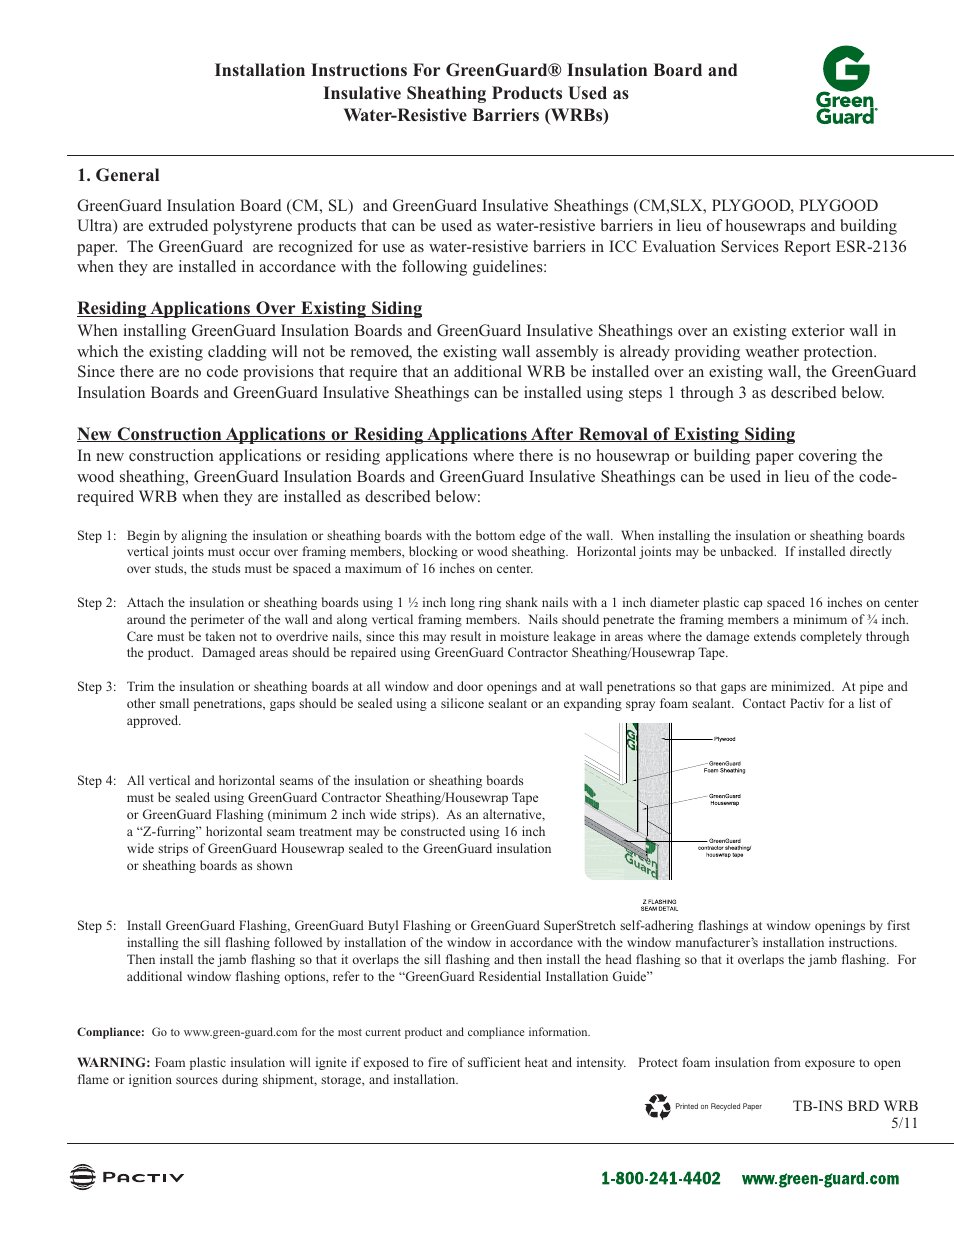 GreenGuard XPS Insulation Board as WRB User Manual | 1 page